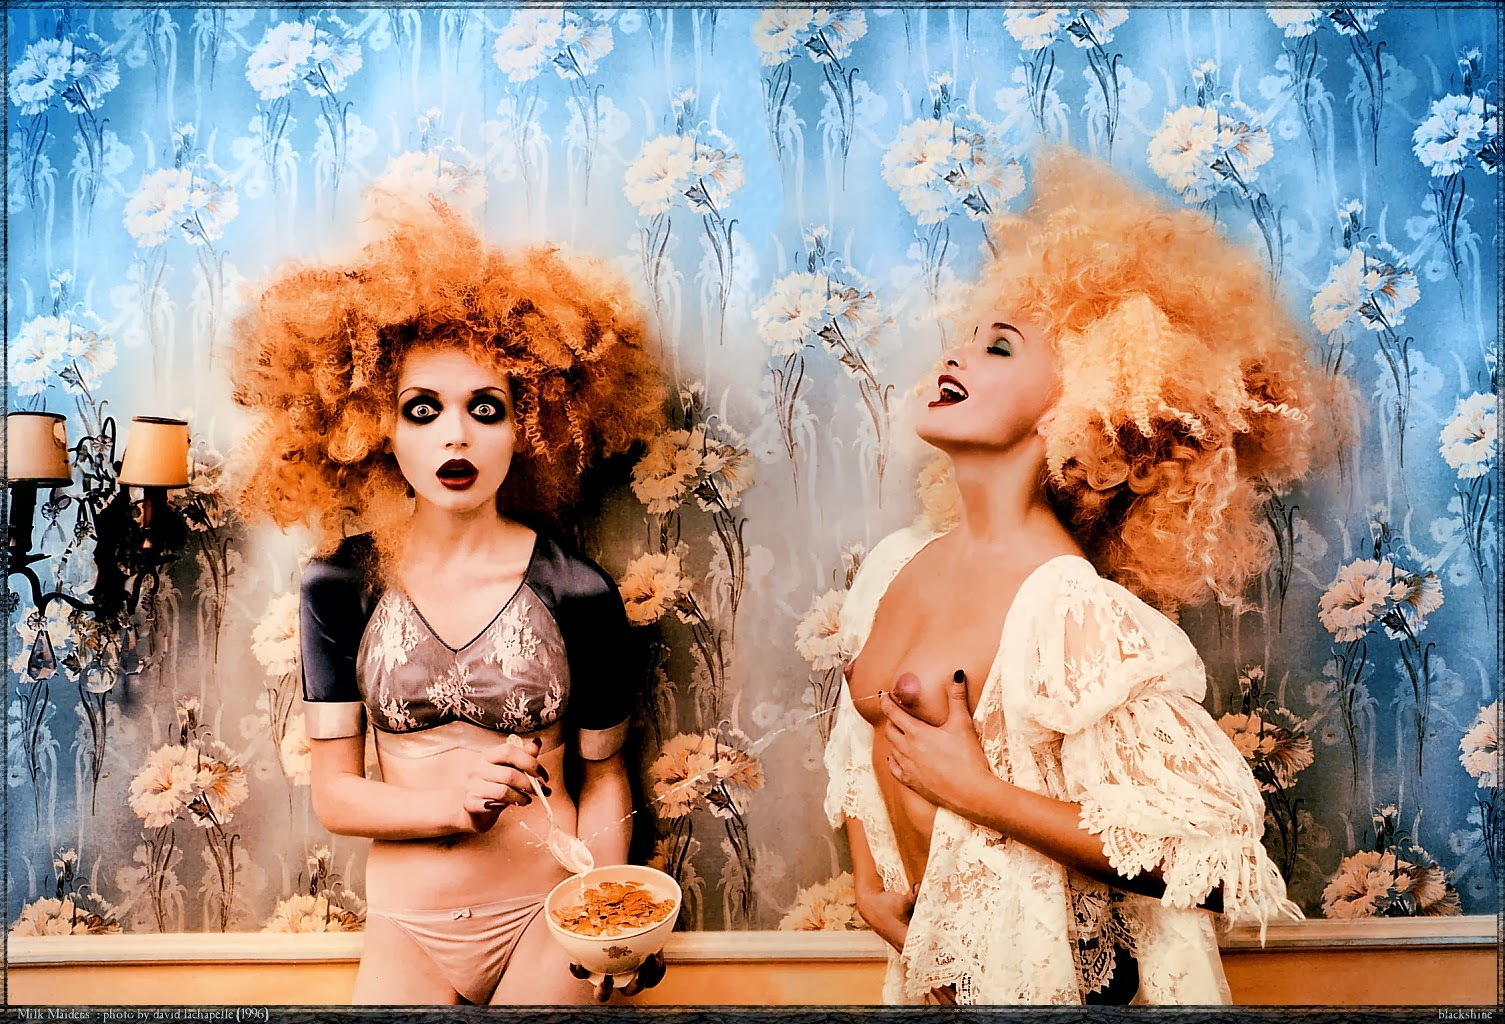 artistas, David Lachapelle